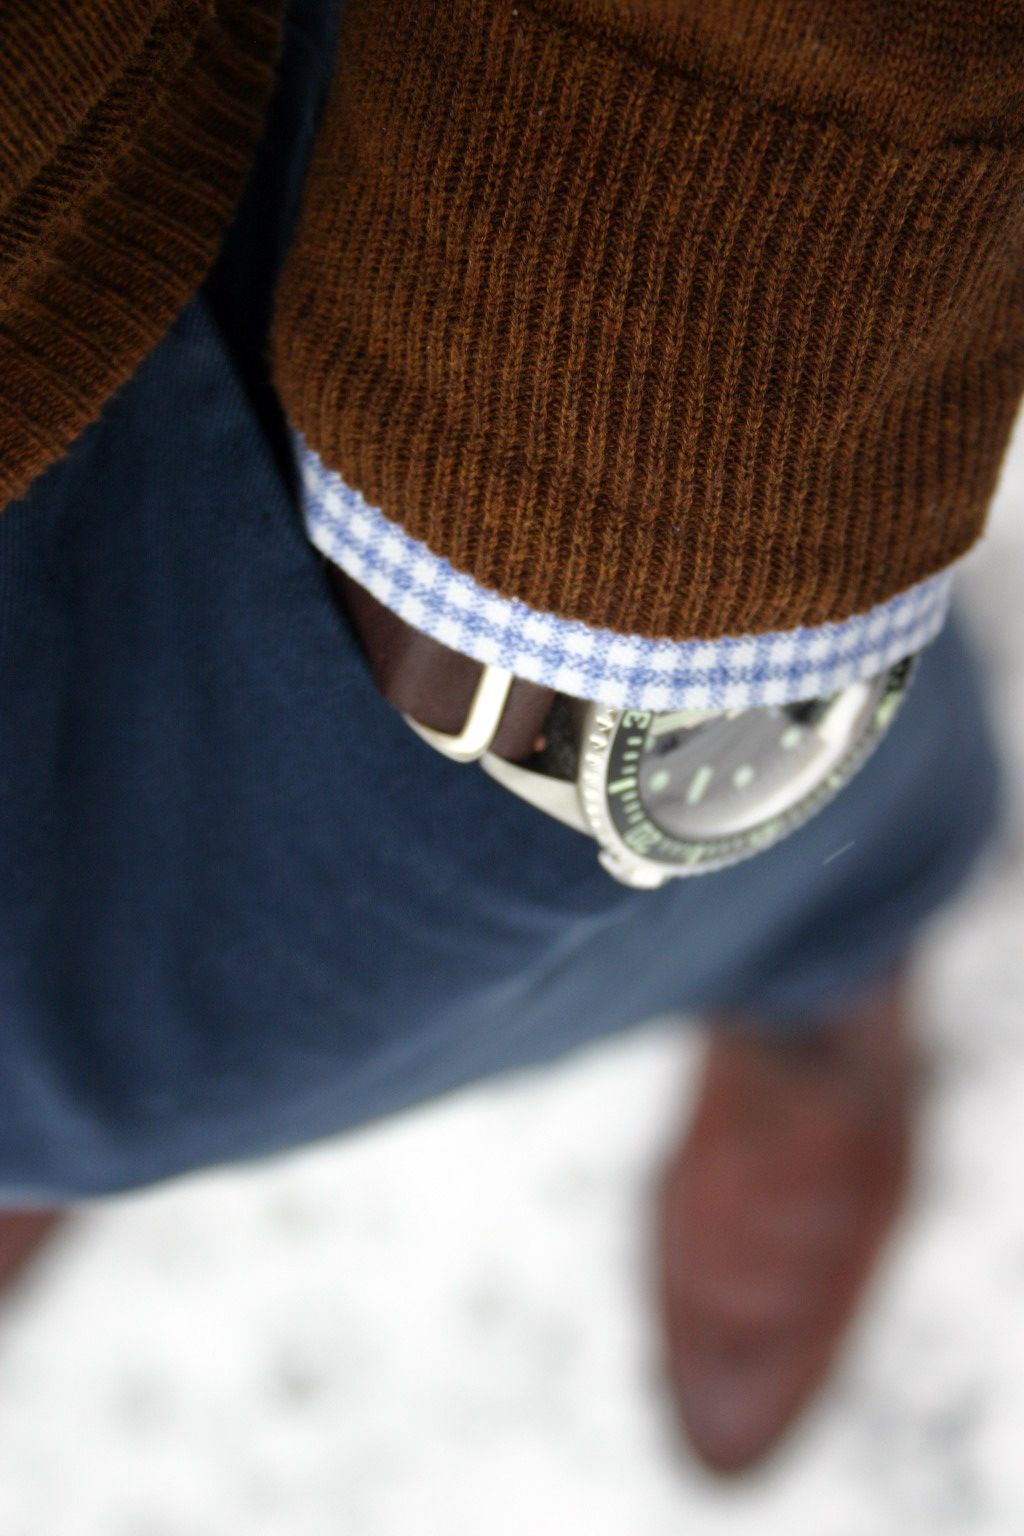 Details at http://thenordicfit.com/a-casual-office-outfit.